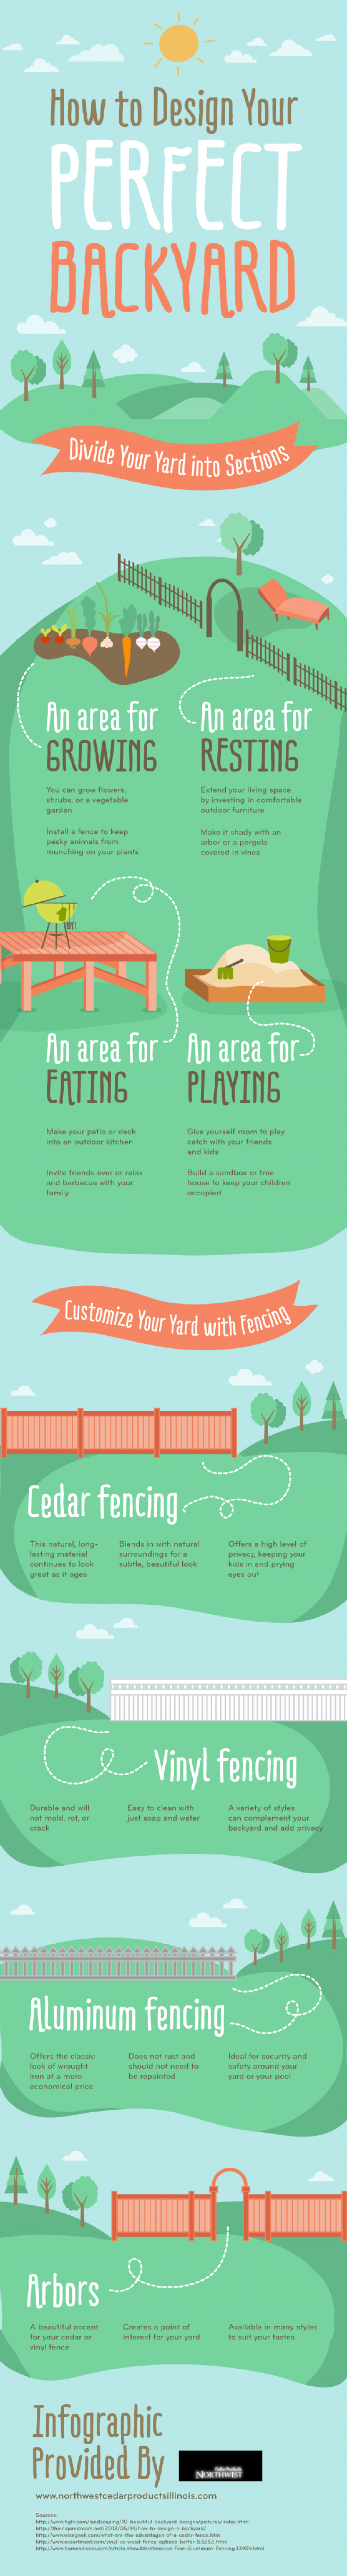 How to Design Your Perfect Backyard  Infographic